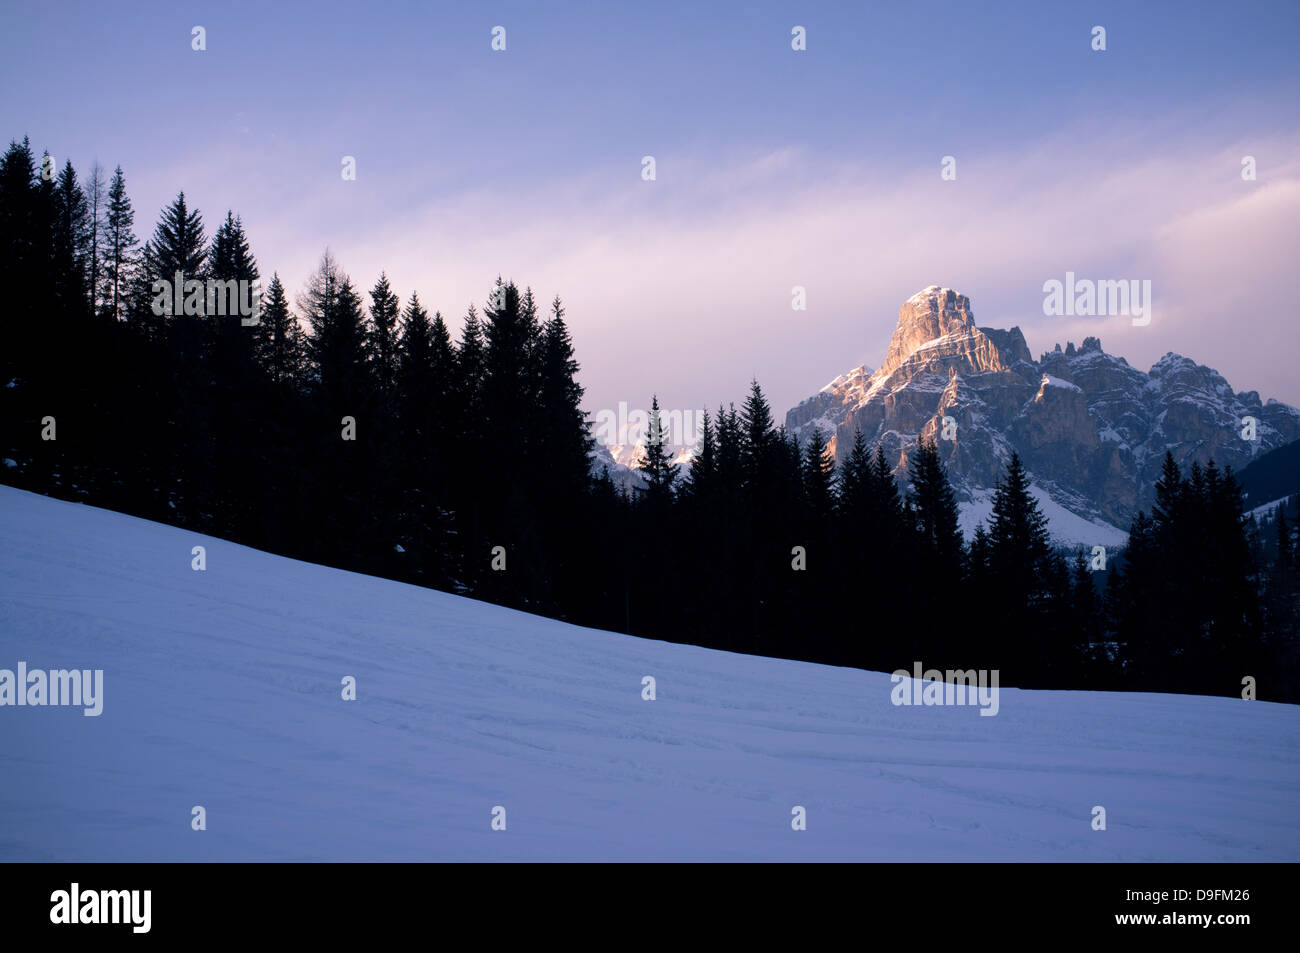 The last run, a view of Sassongher mountain at sunset from a piste at Alta Badia ski resort, Dolomites, South Tyrol, - Stock Image